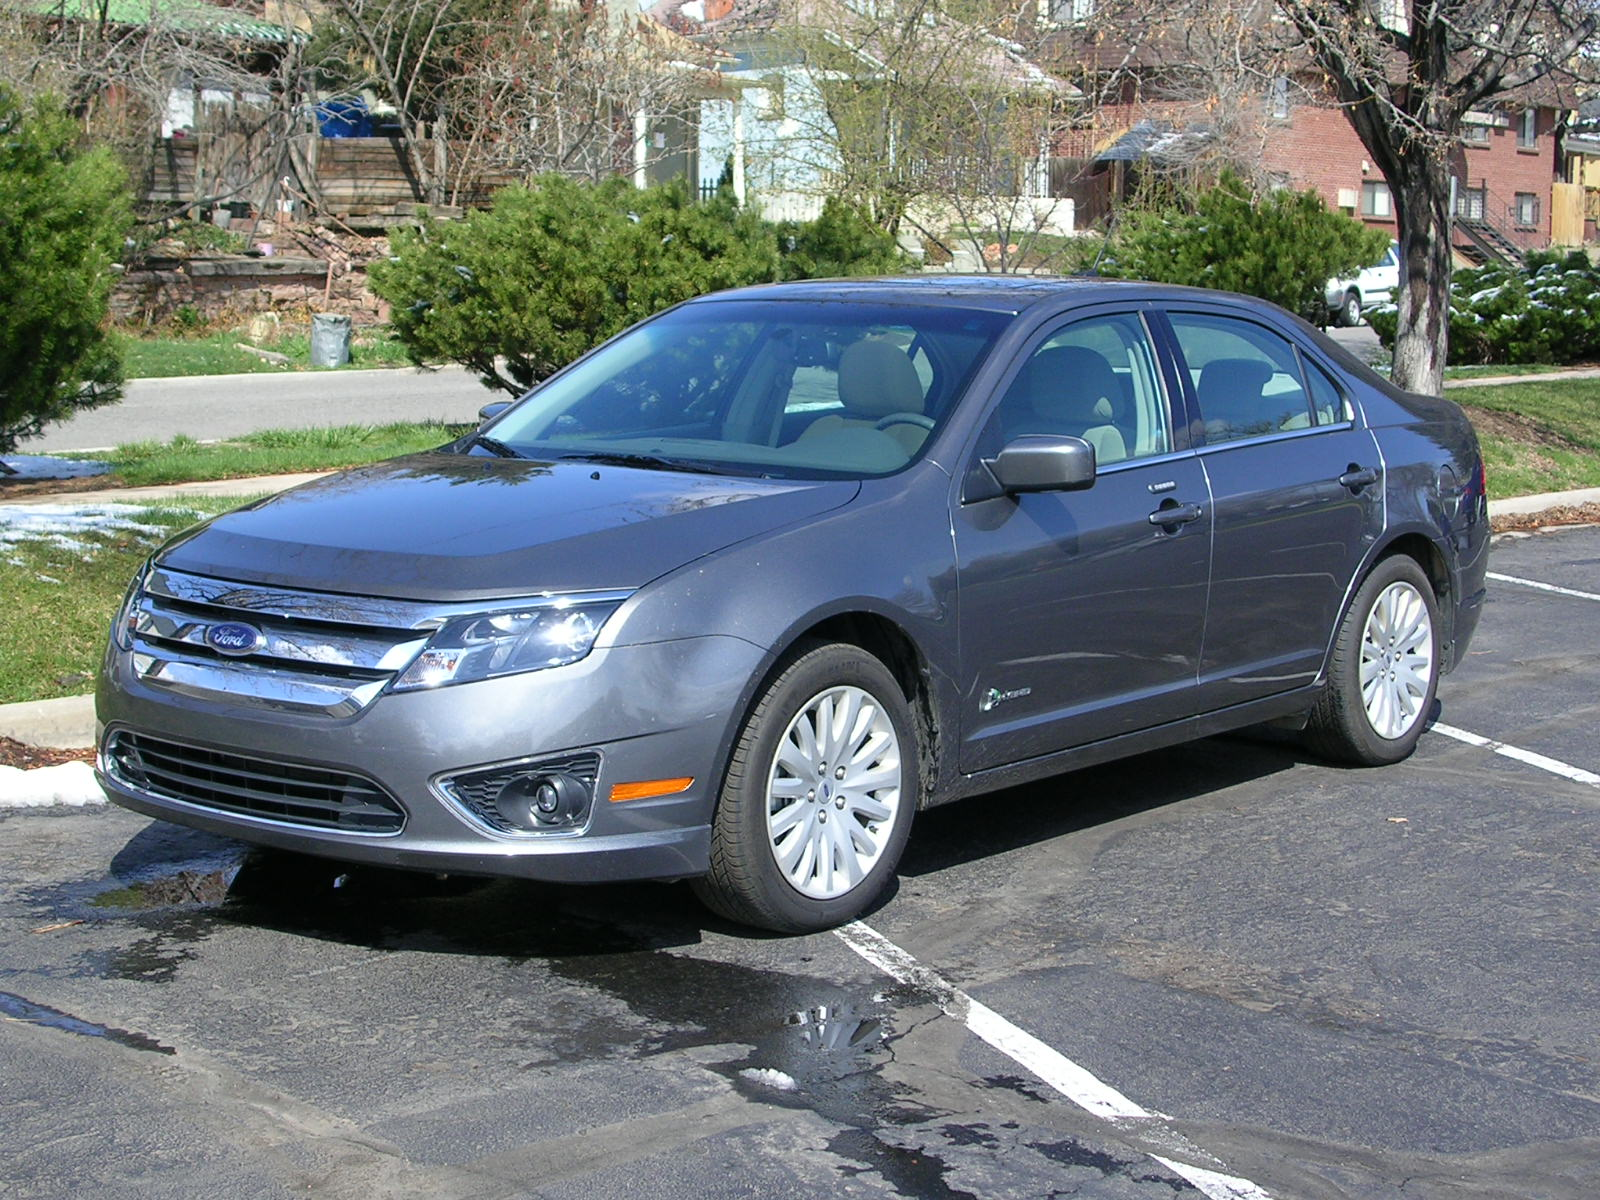 2010 ford fusion hybrid offers world class fuel mileage denver auto solutions. Black Bedroom Furniture Sets. Home Design Ideas